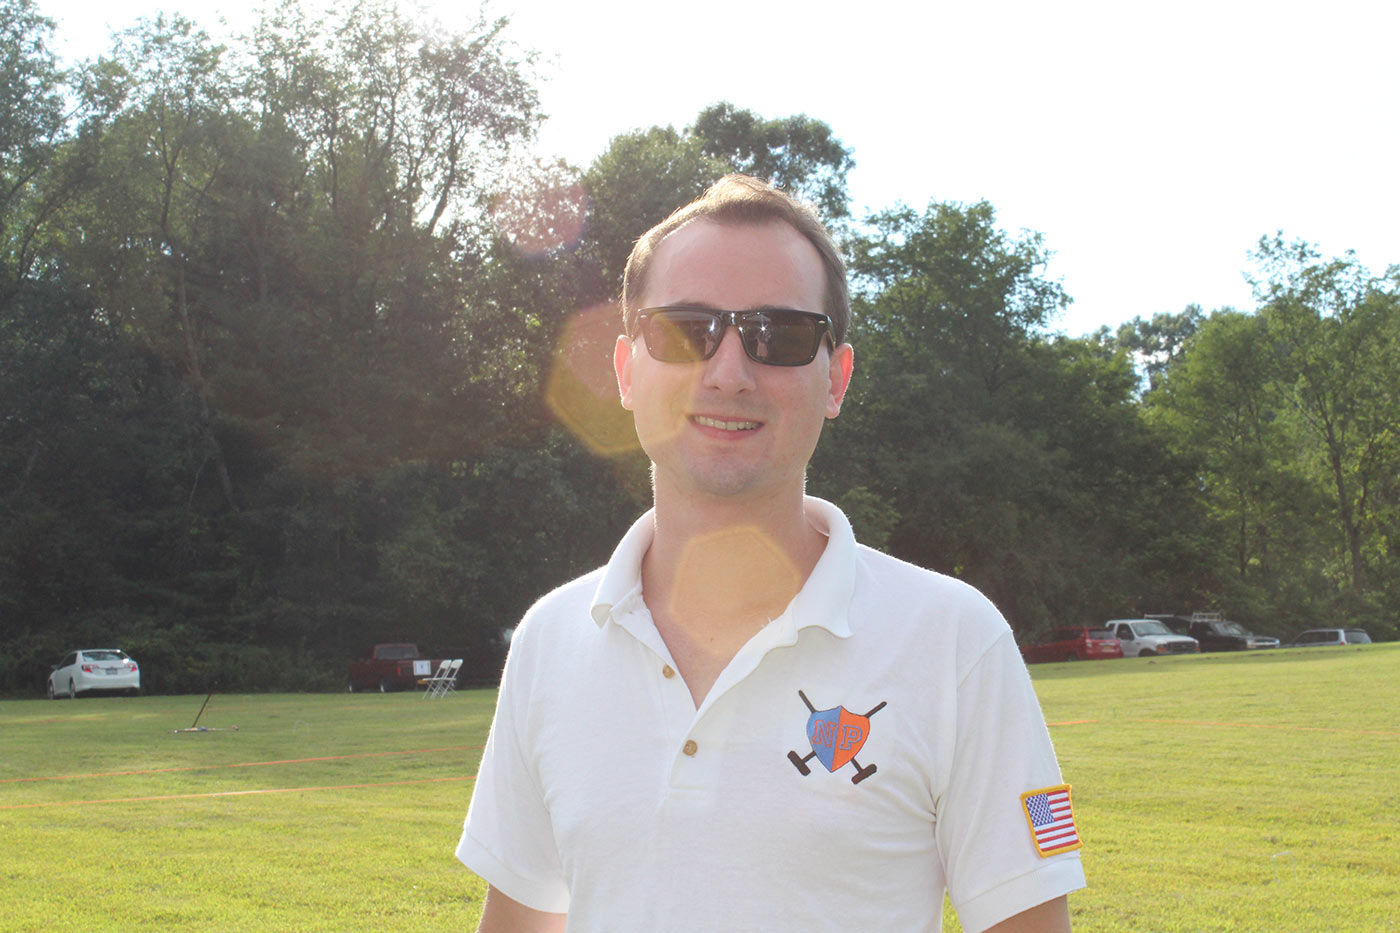 man wearing white croquet polo